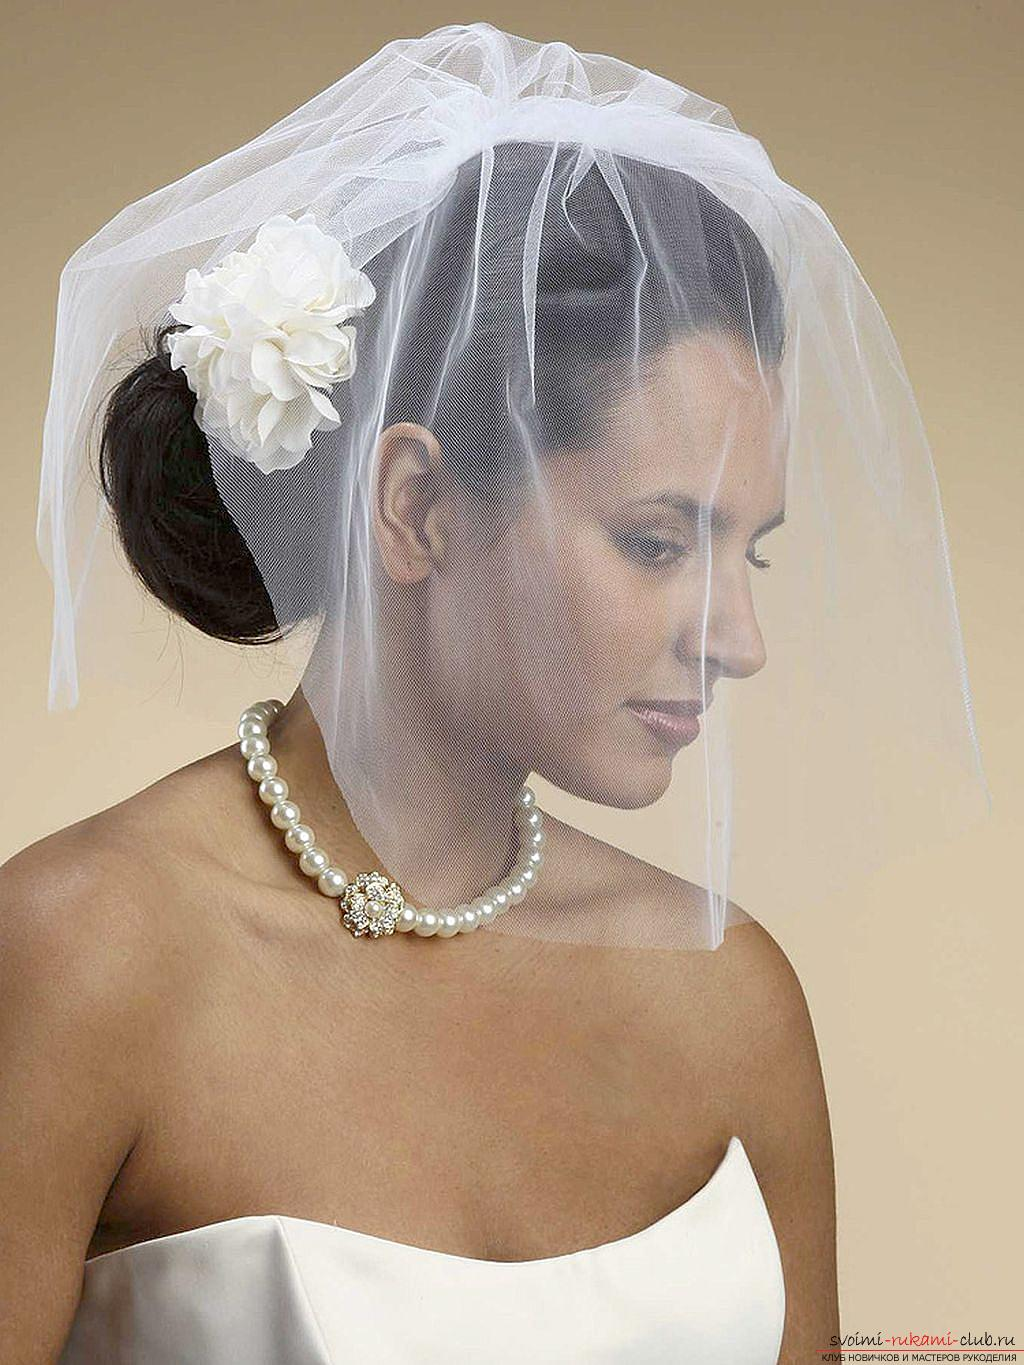 Hairstyles for the bride for the wedding with the veil. Picture №3